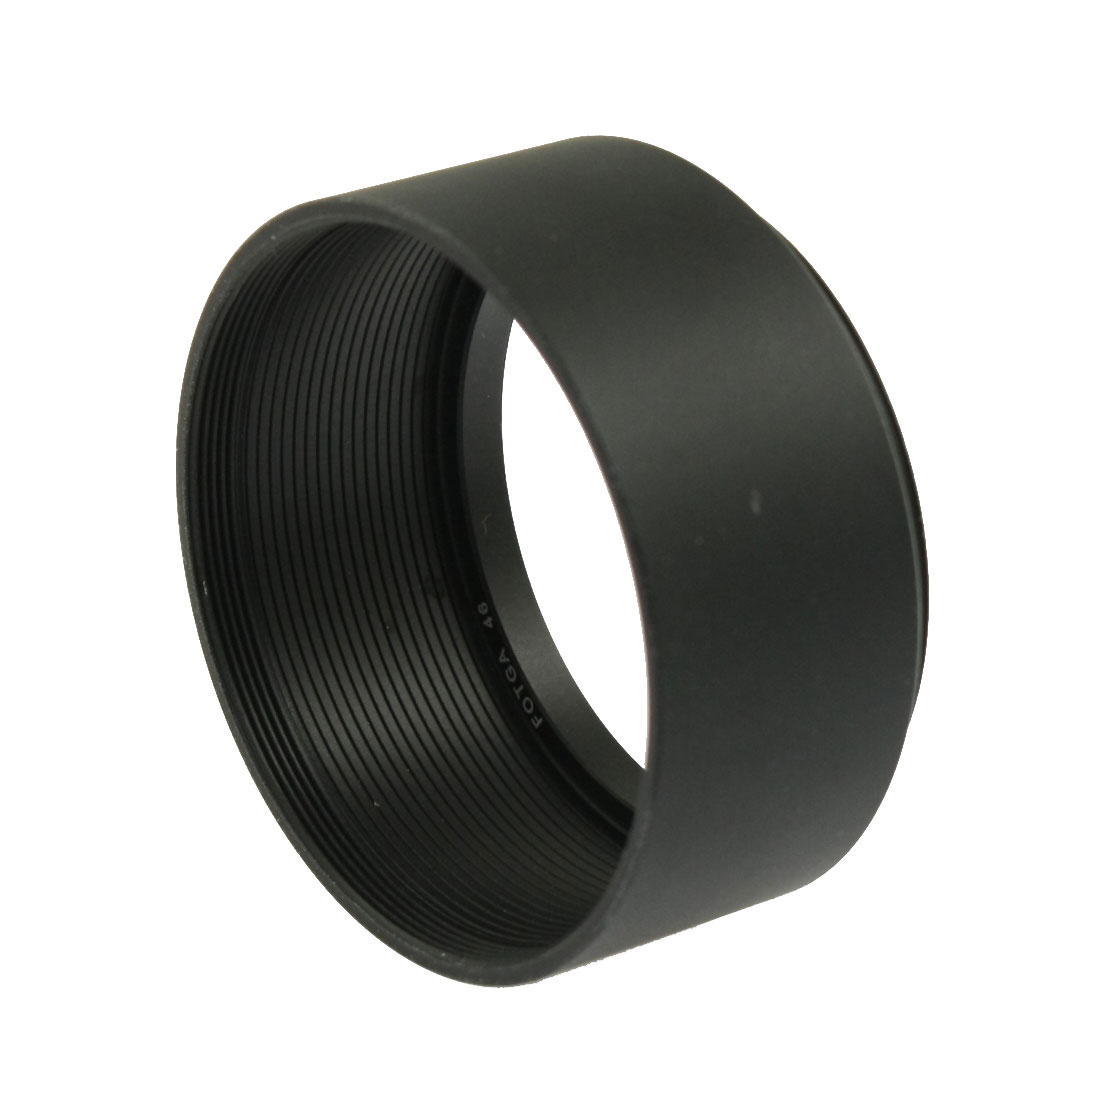 Filter Screw Mount 46mm Metal Lens Hood for Camera